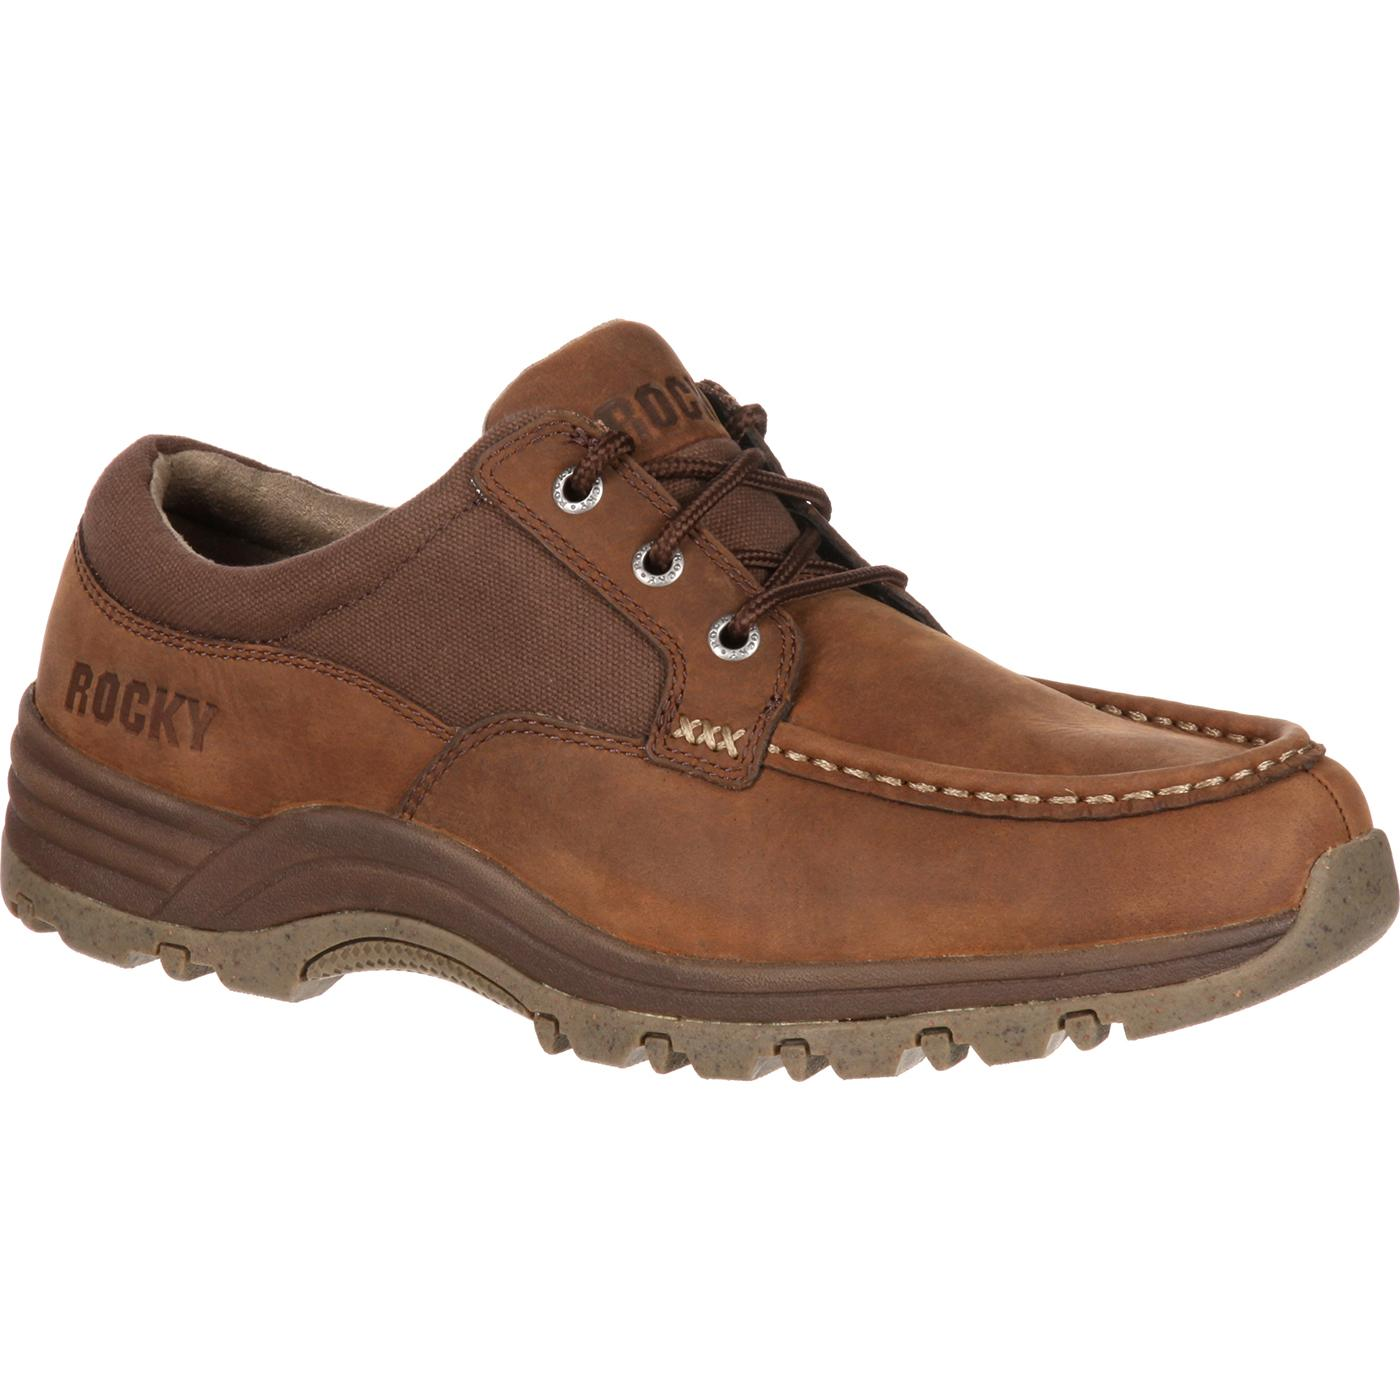 rocky lakeland s comfortable oxford shoes rks0200